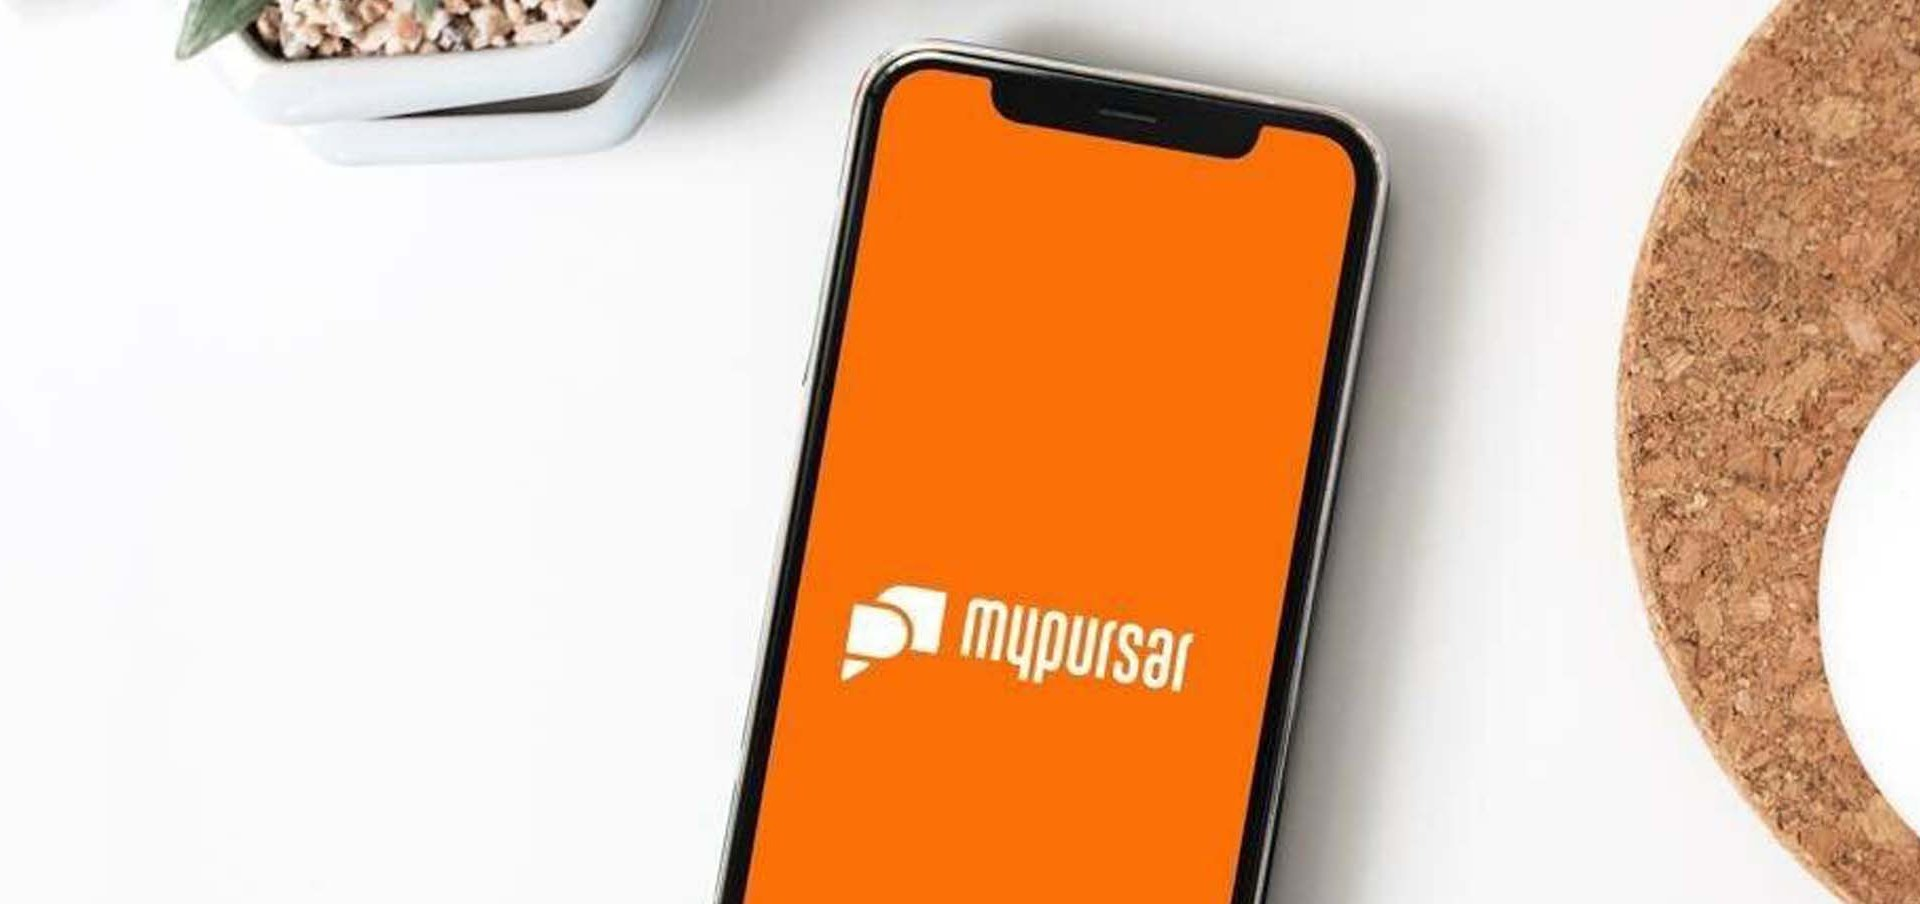 MYPURSAR Unveils the MYPURSAR Application to Enable Diasporans Recharge Airtime and Pay Bills in Cameroon